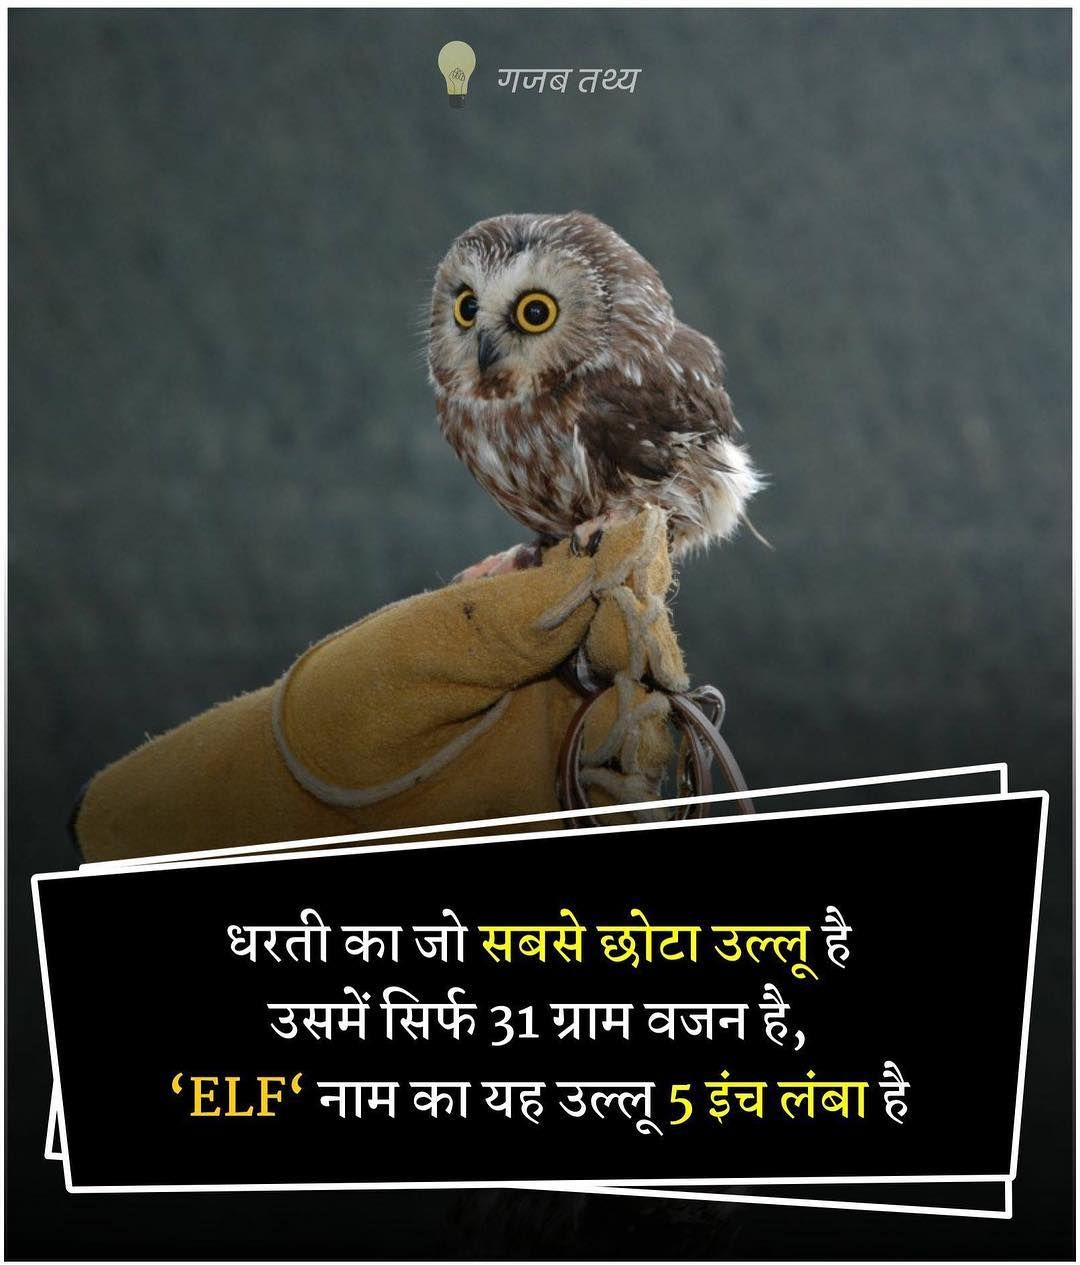 About Owl in Hindi